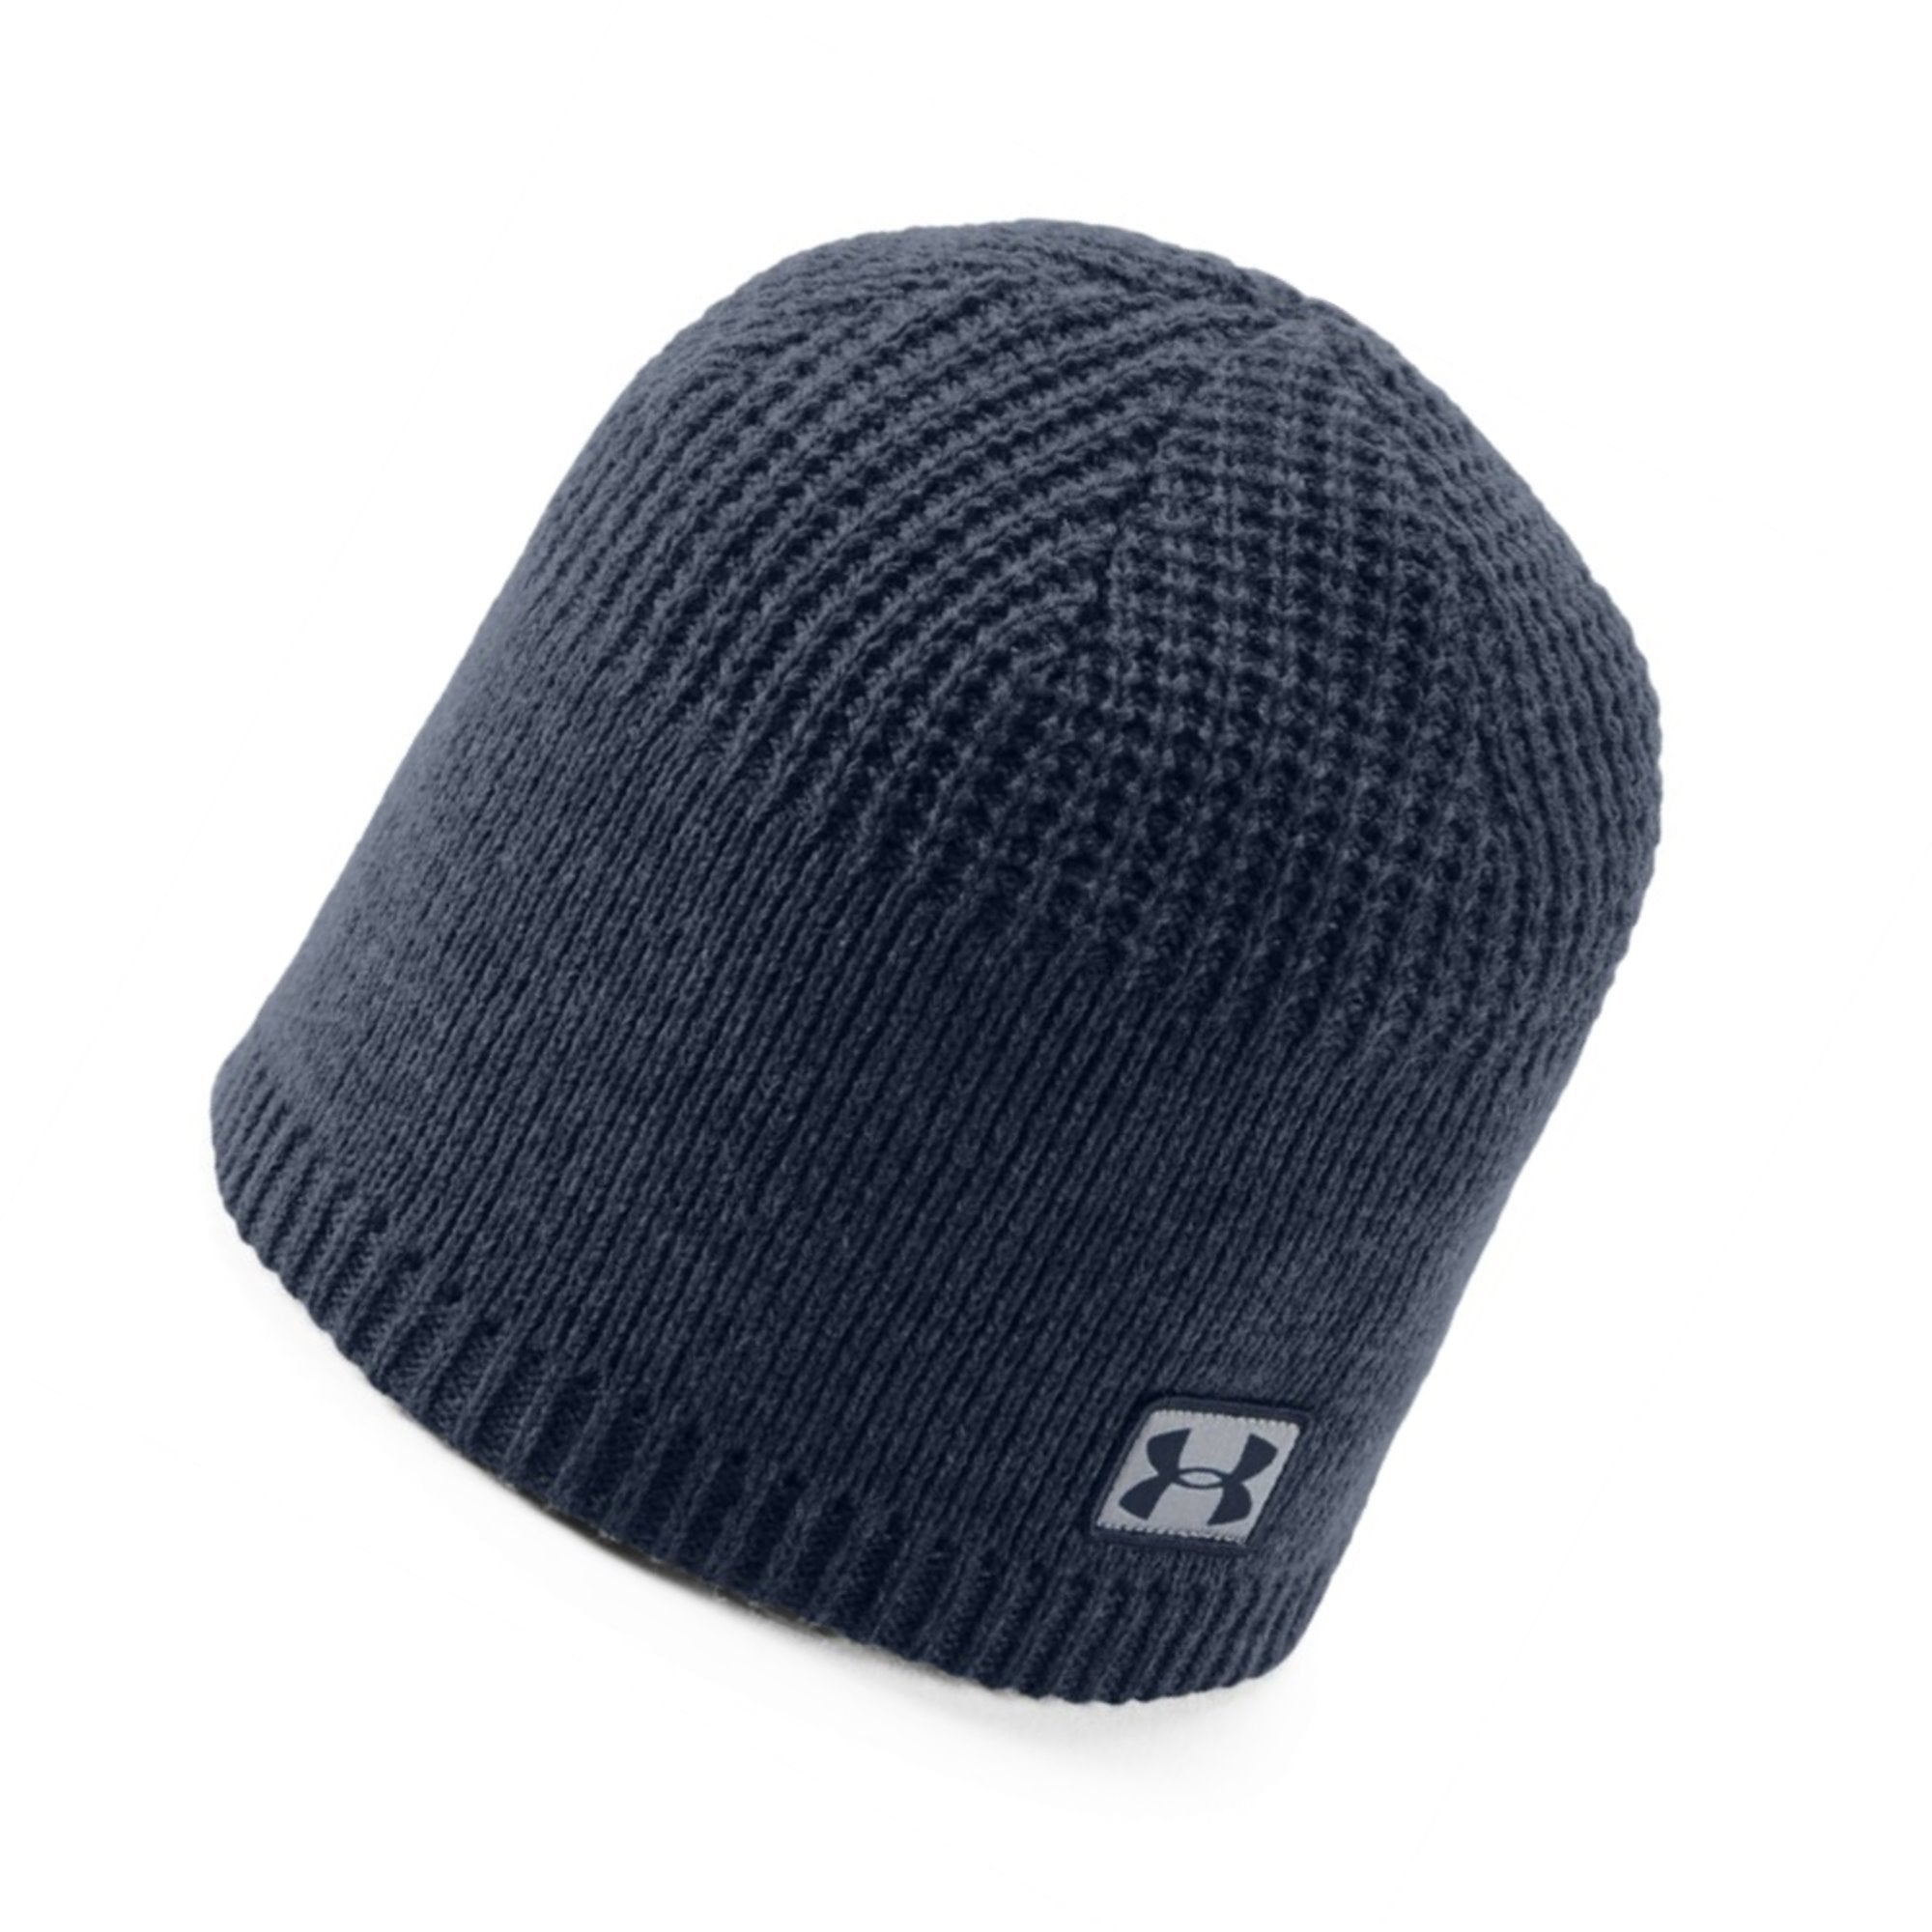 Under Armour Golf Knit Beanie